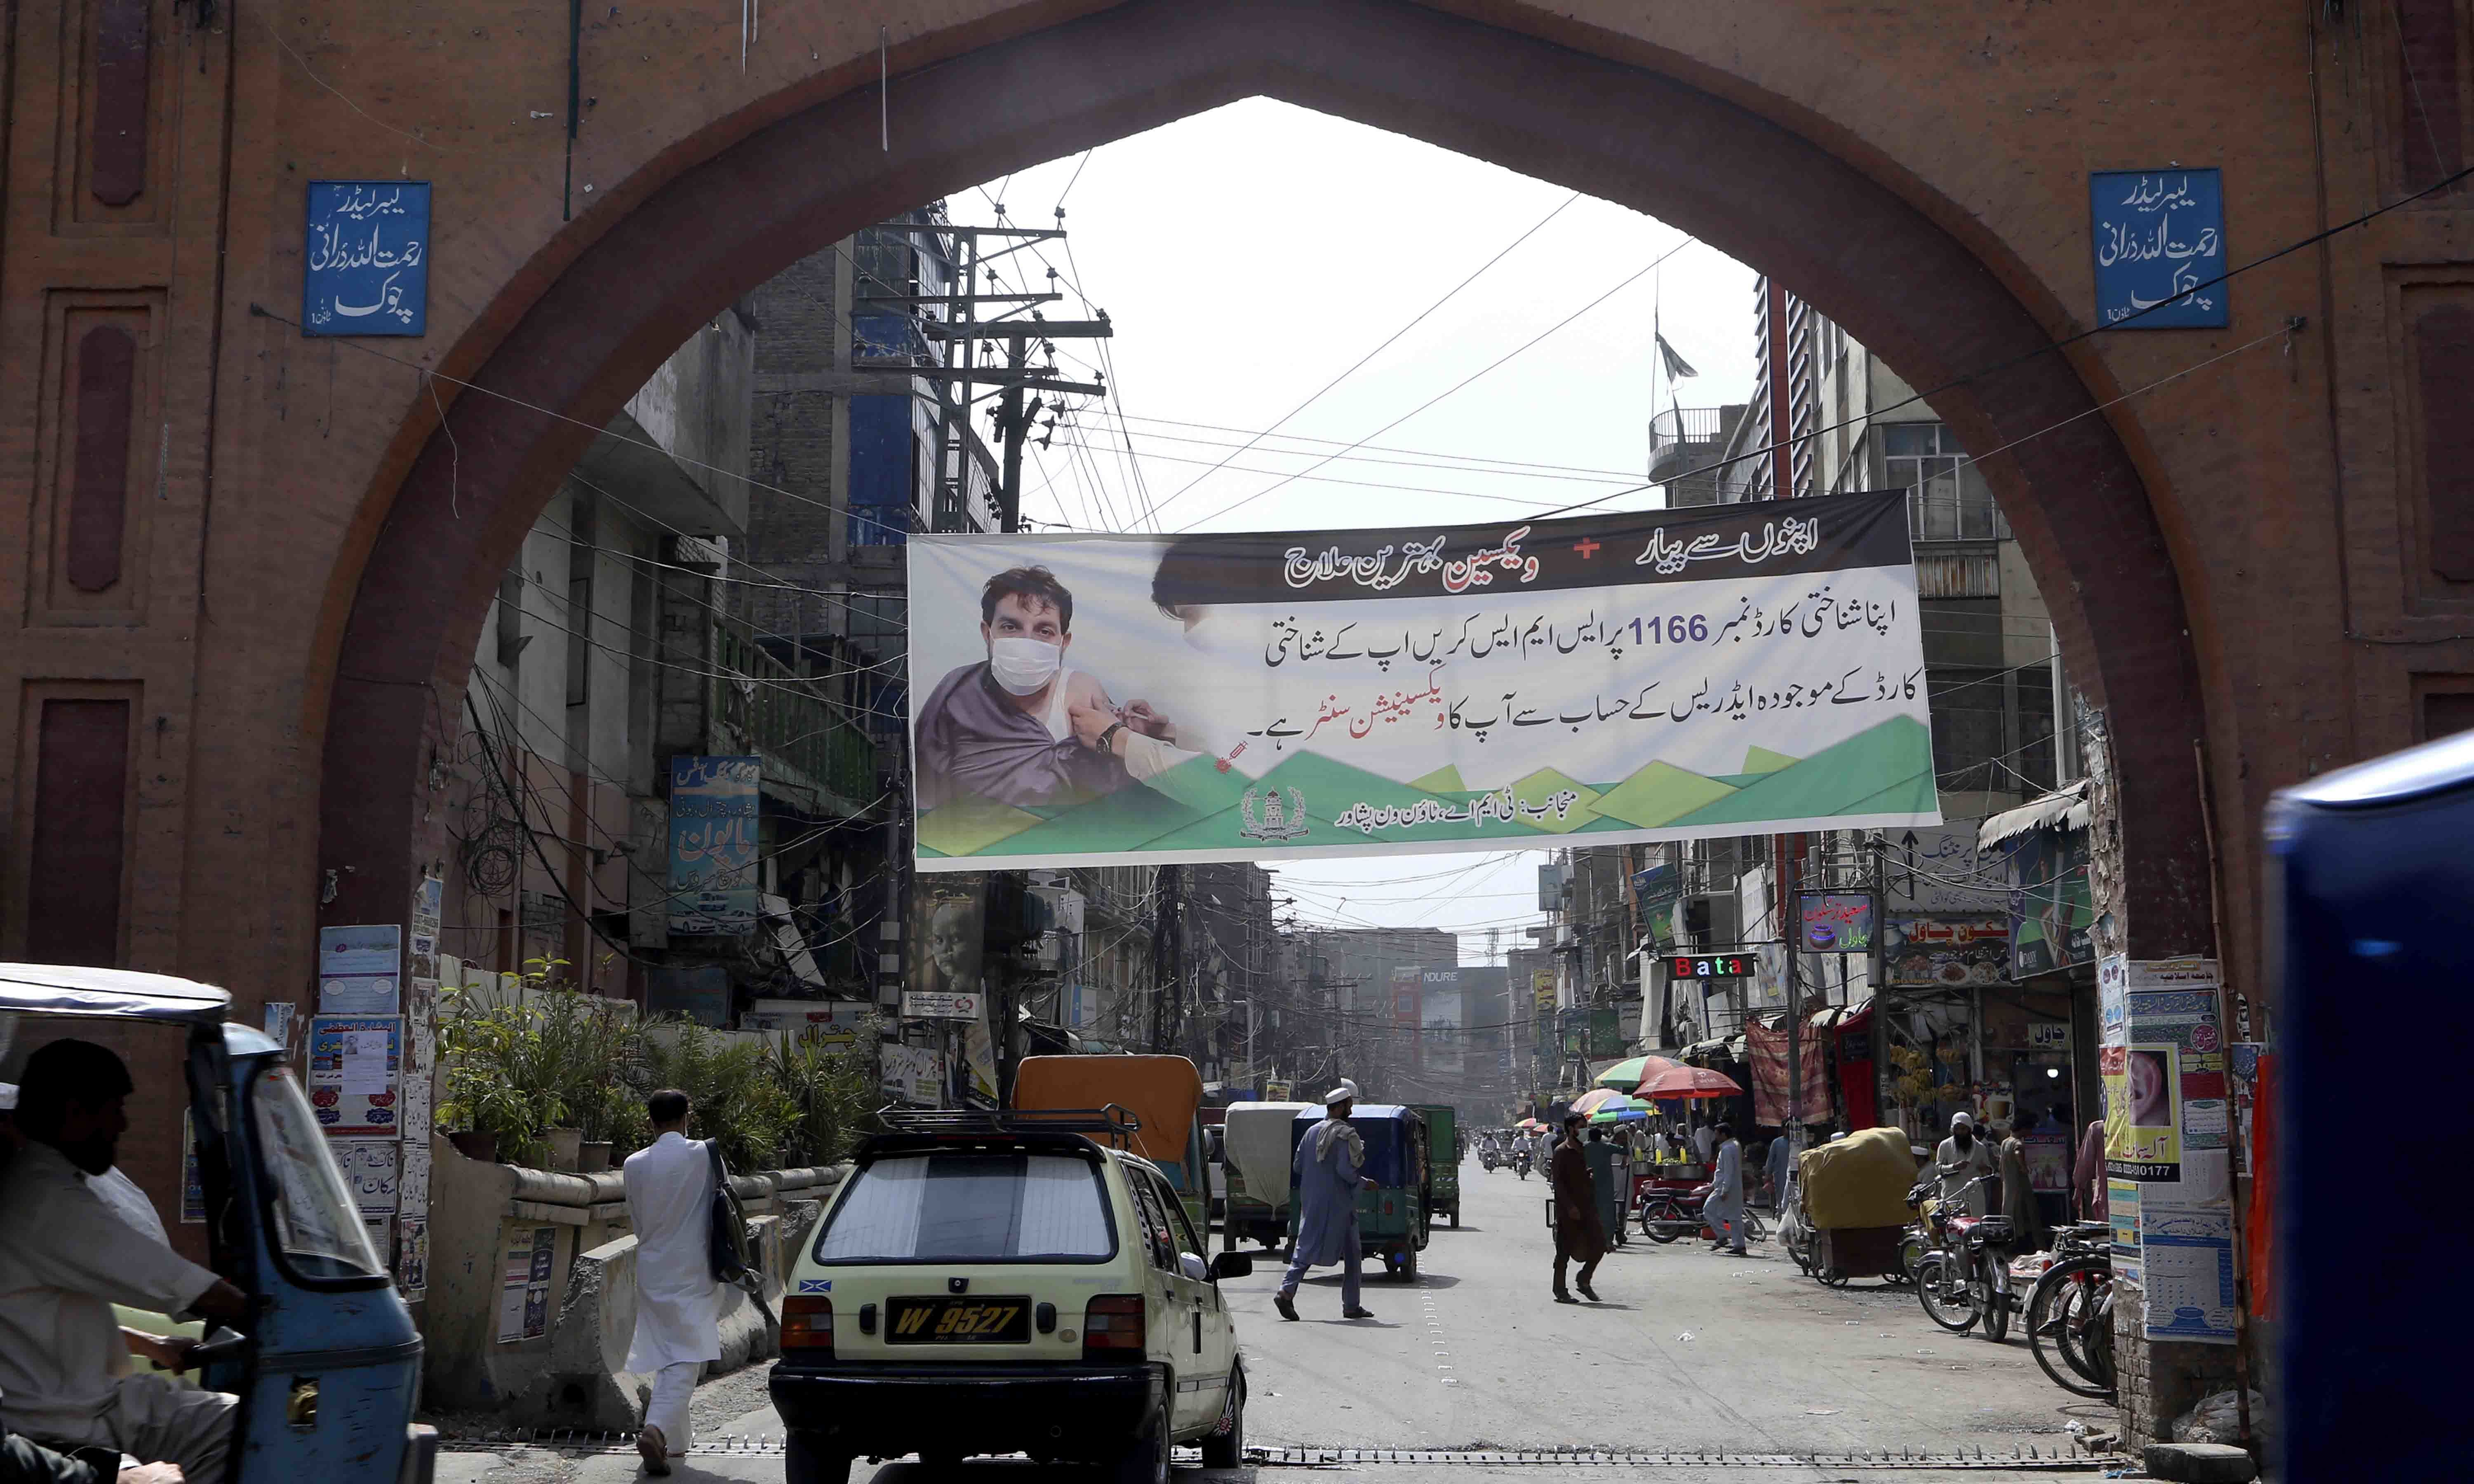 A banner giving details of the Covid-19 vaccination process is displayed on a market archway by local administration to encourage people to get vaccinated in Peshawar on June 17. — AP